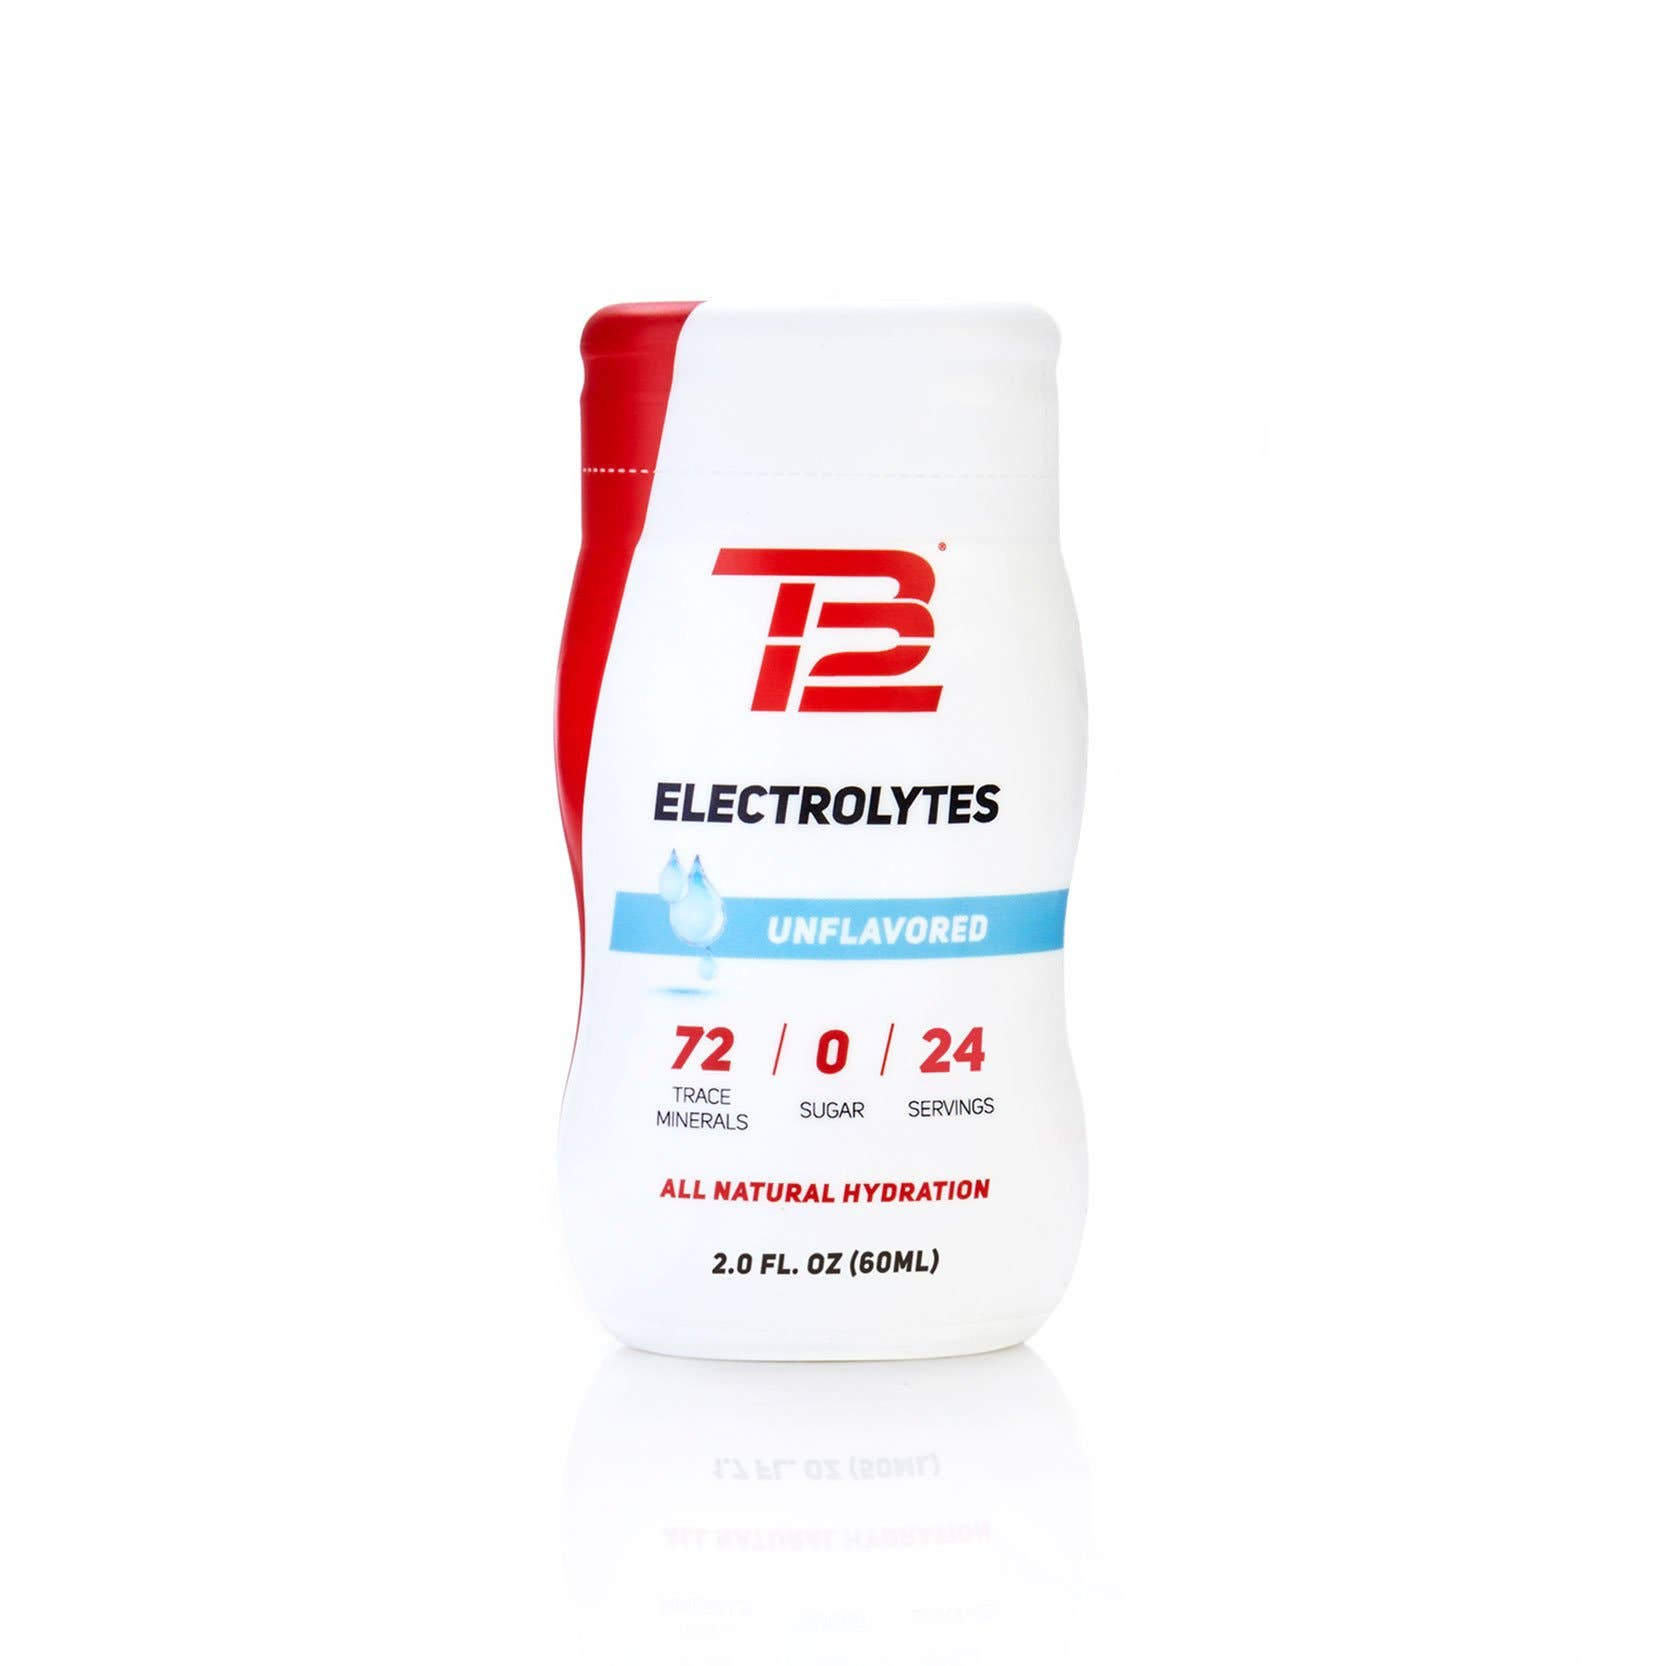 TB12 unflavored electrolytes front